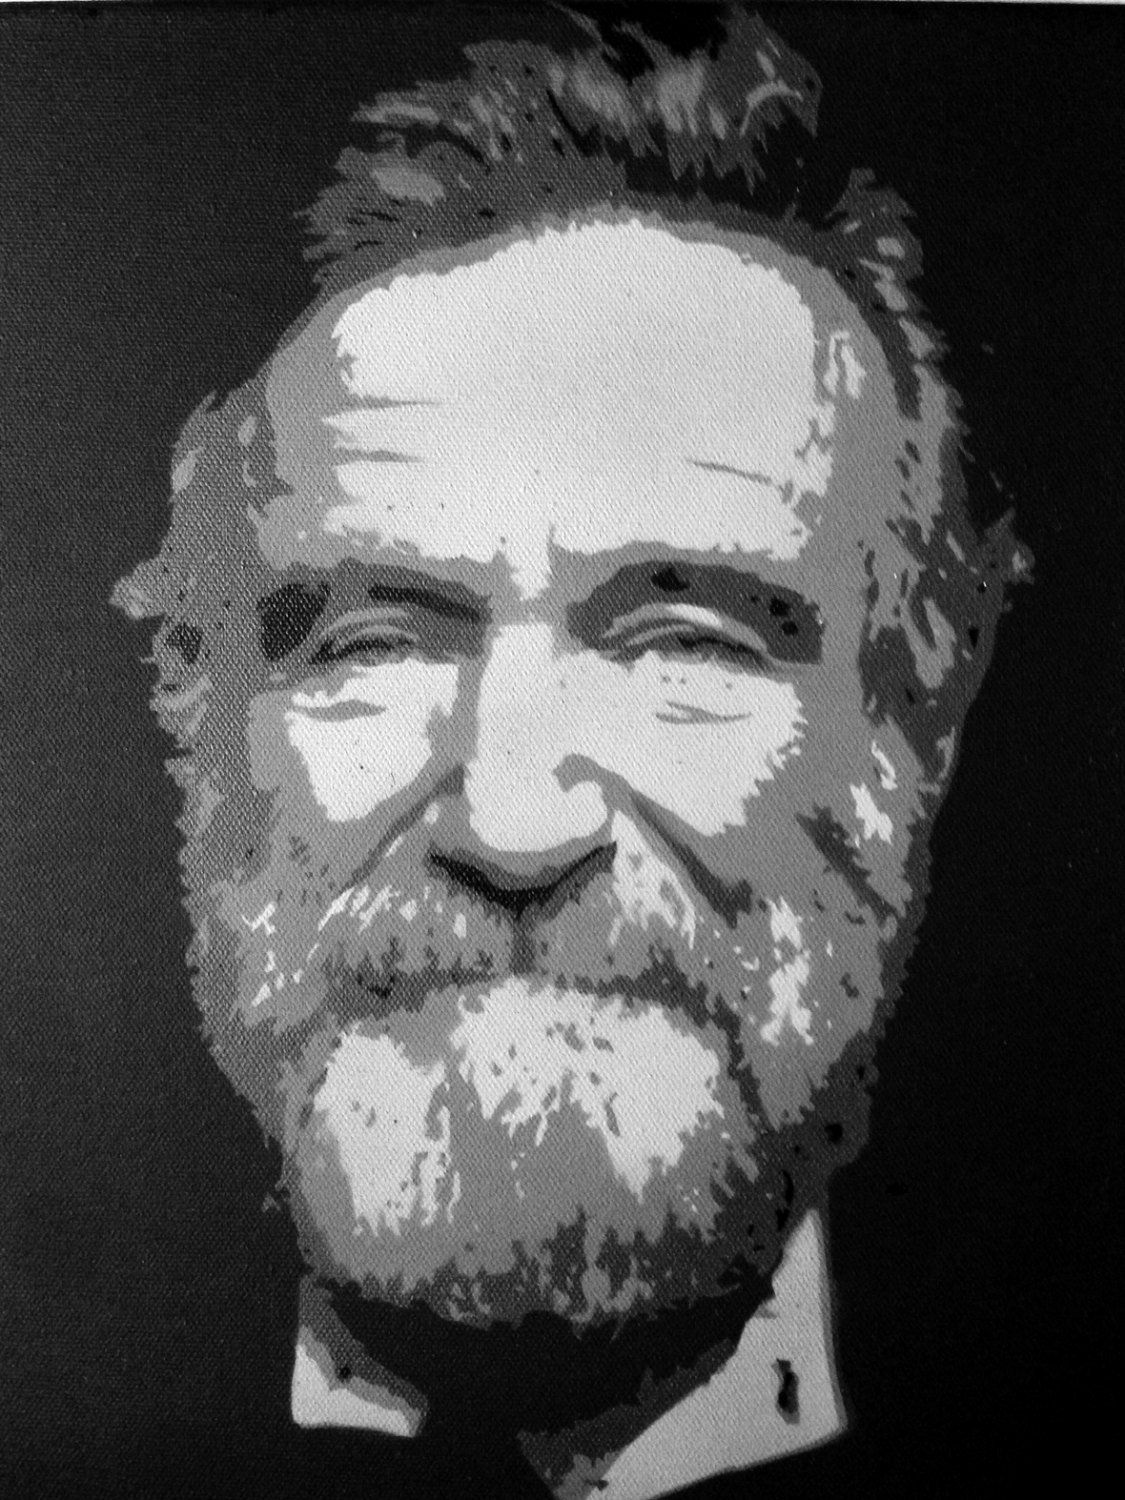 Multi Layer Stencil Art Beautiful Robin Williams Multi Layer Stencil Painting On Black Canvas 11